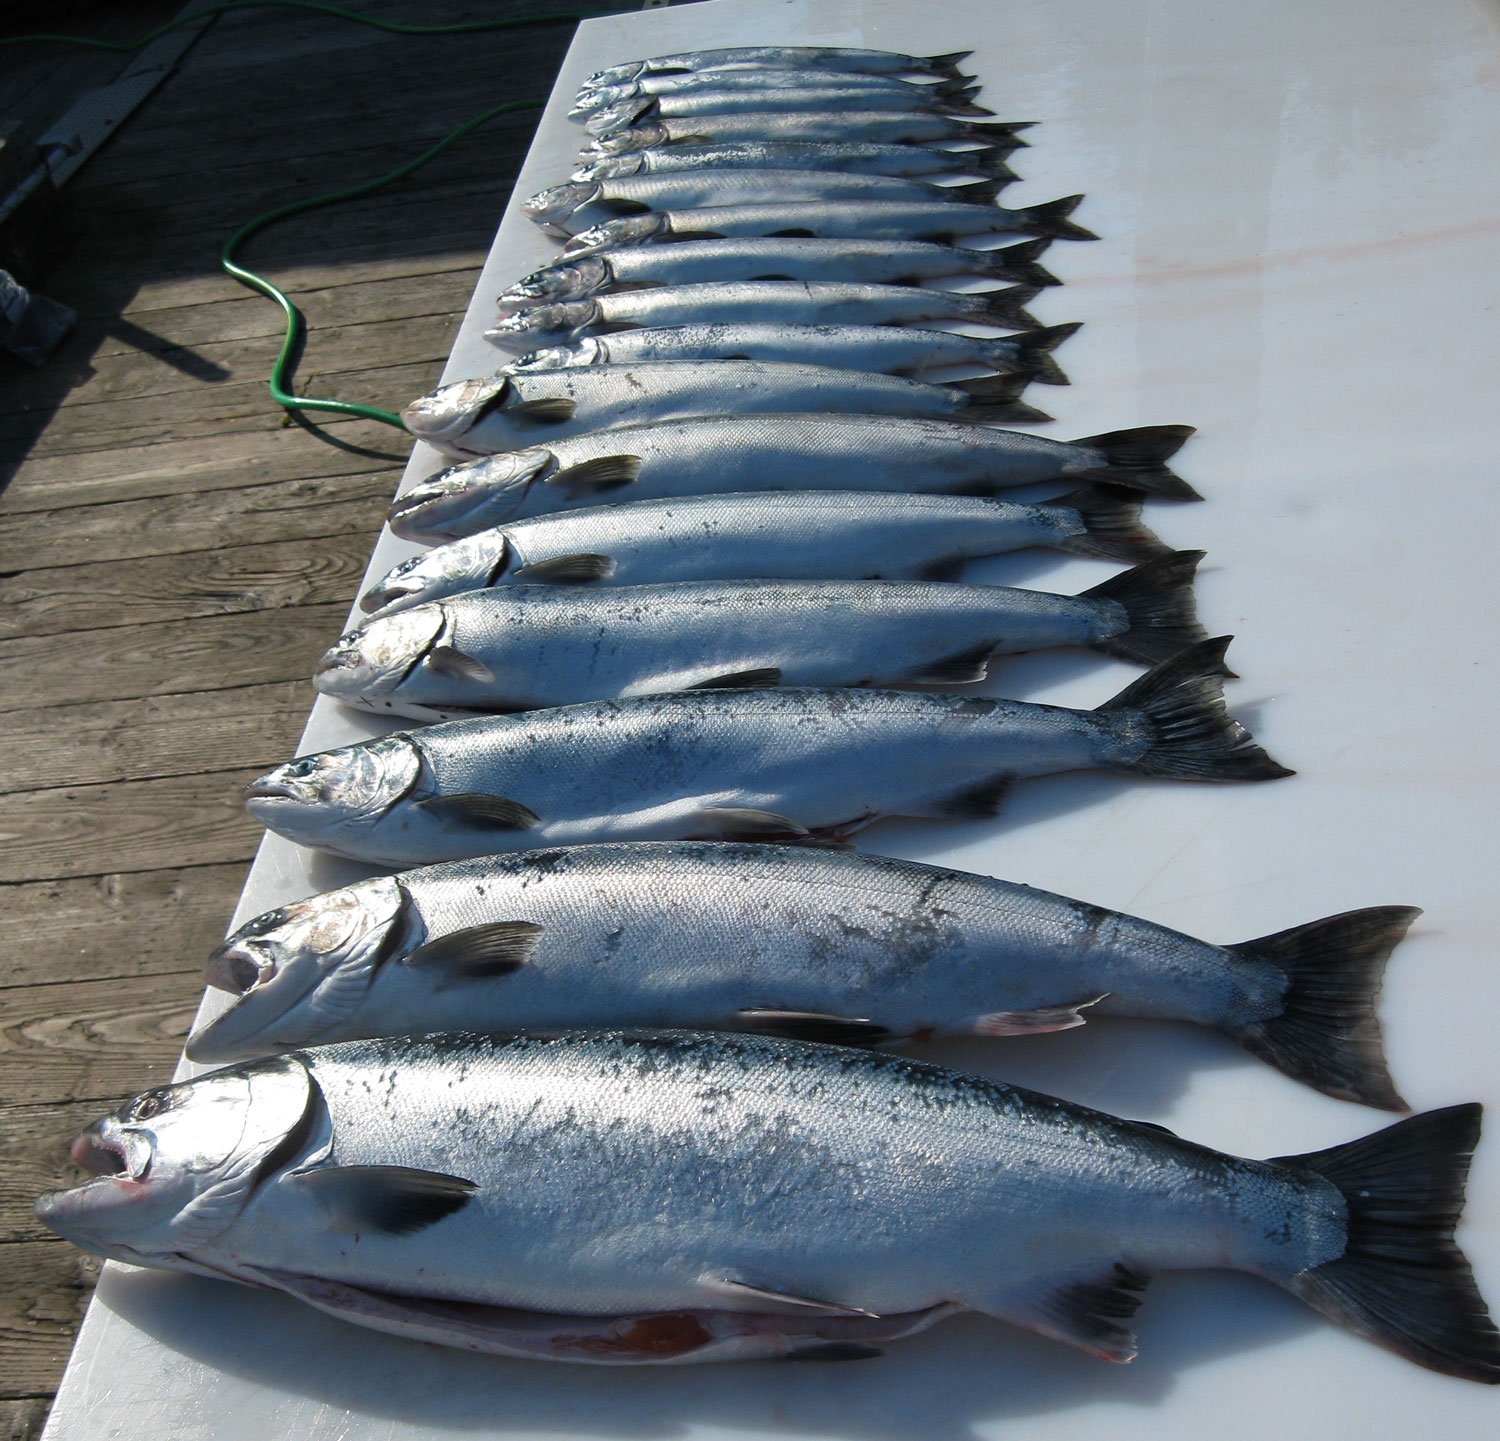 Silver (coho) salmon and pink (humpy) salmon. The closest silver salmon weighed 13 pounds (6 kg) after it was cleaned.